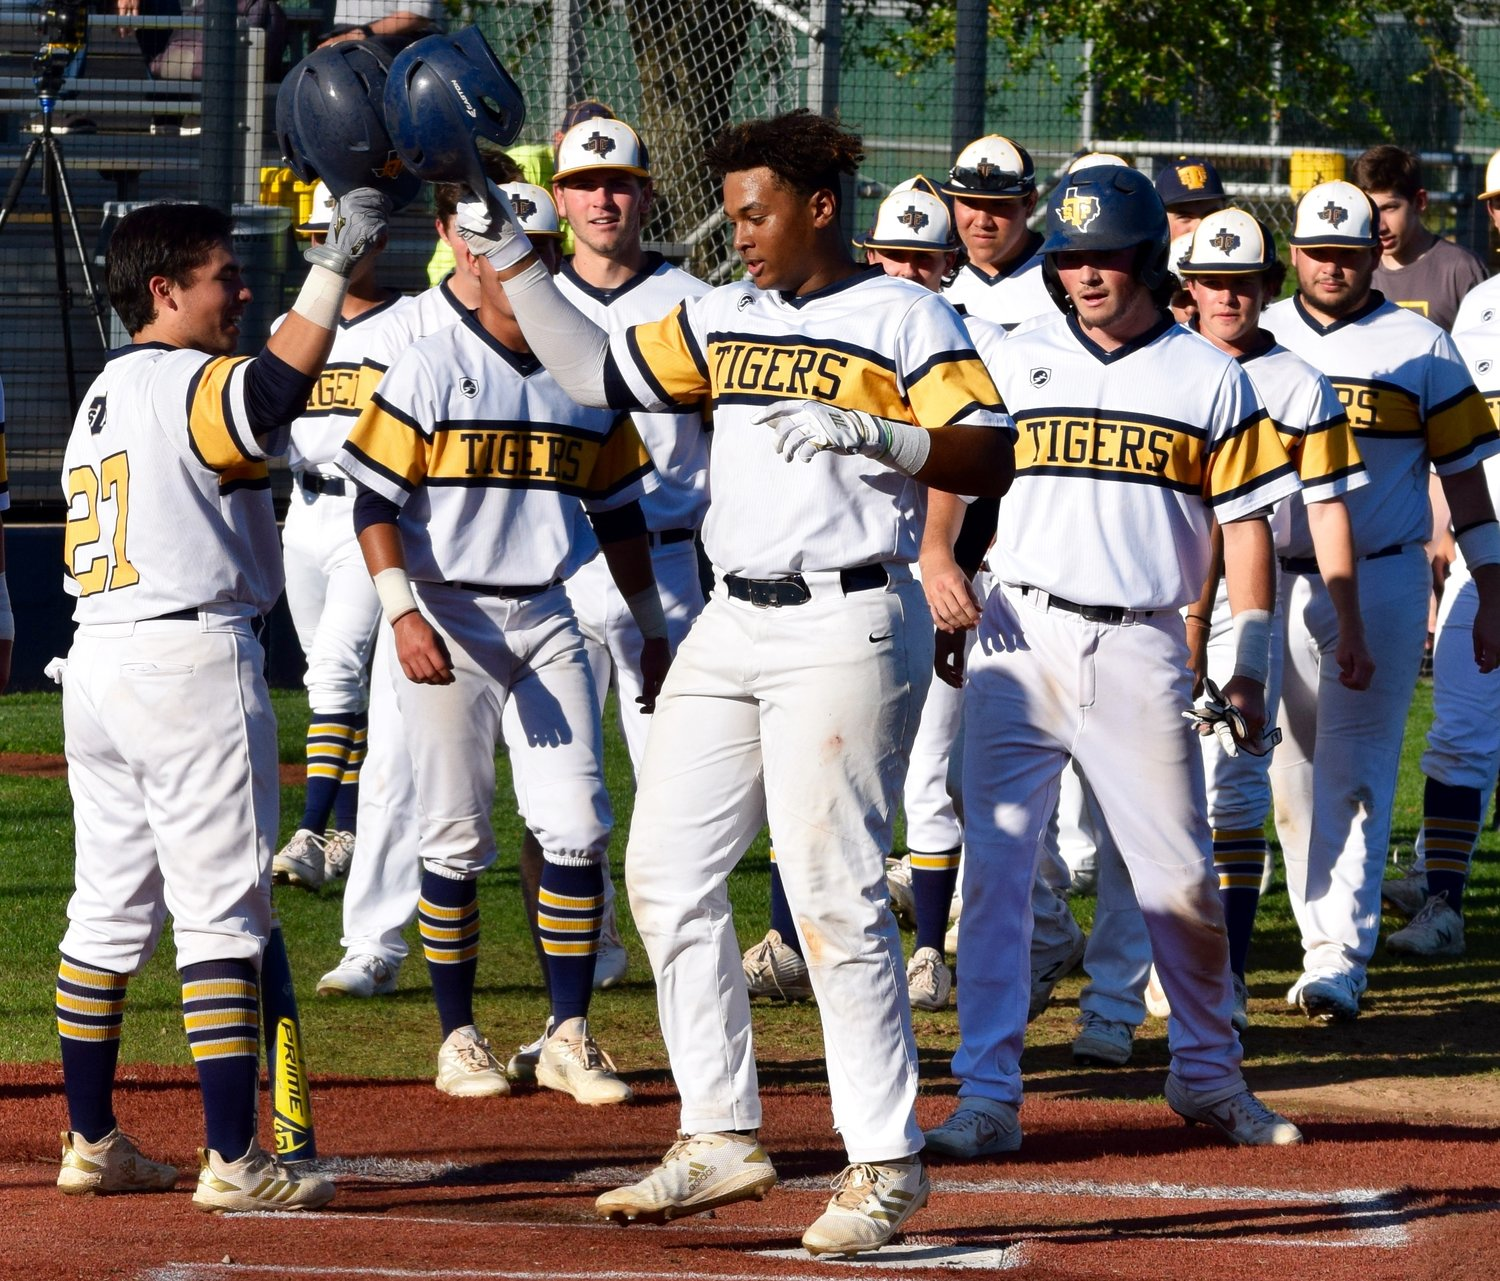 Kam Kelton, center, hit a 2-run home run and Stony Point beat Round Rock 8-3 at home on Monday afternoon. It was the first loss of the district season for the Dragons.